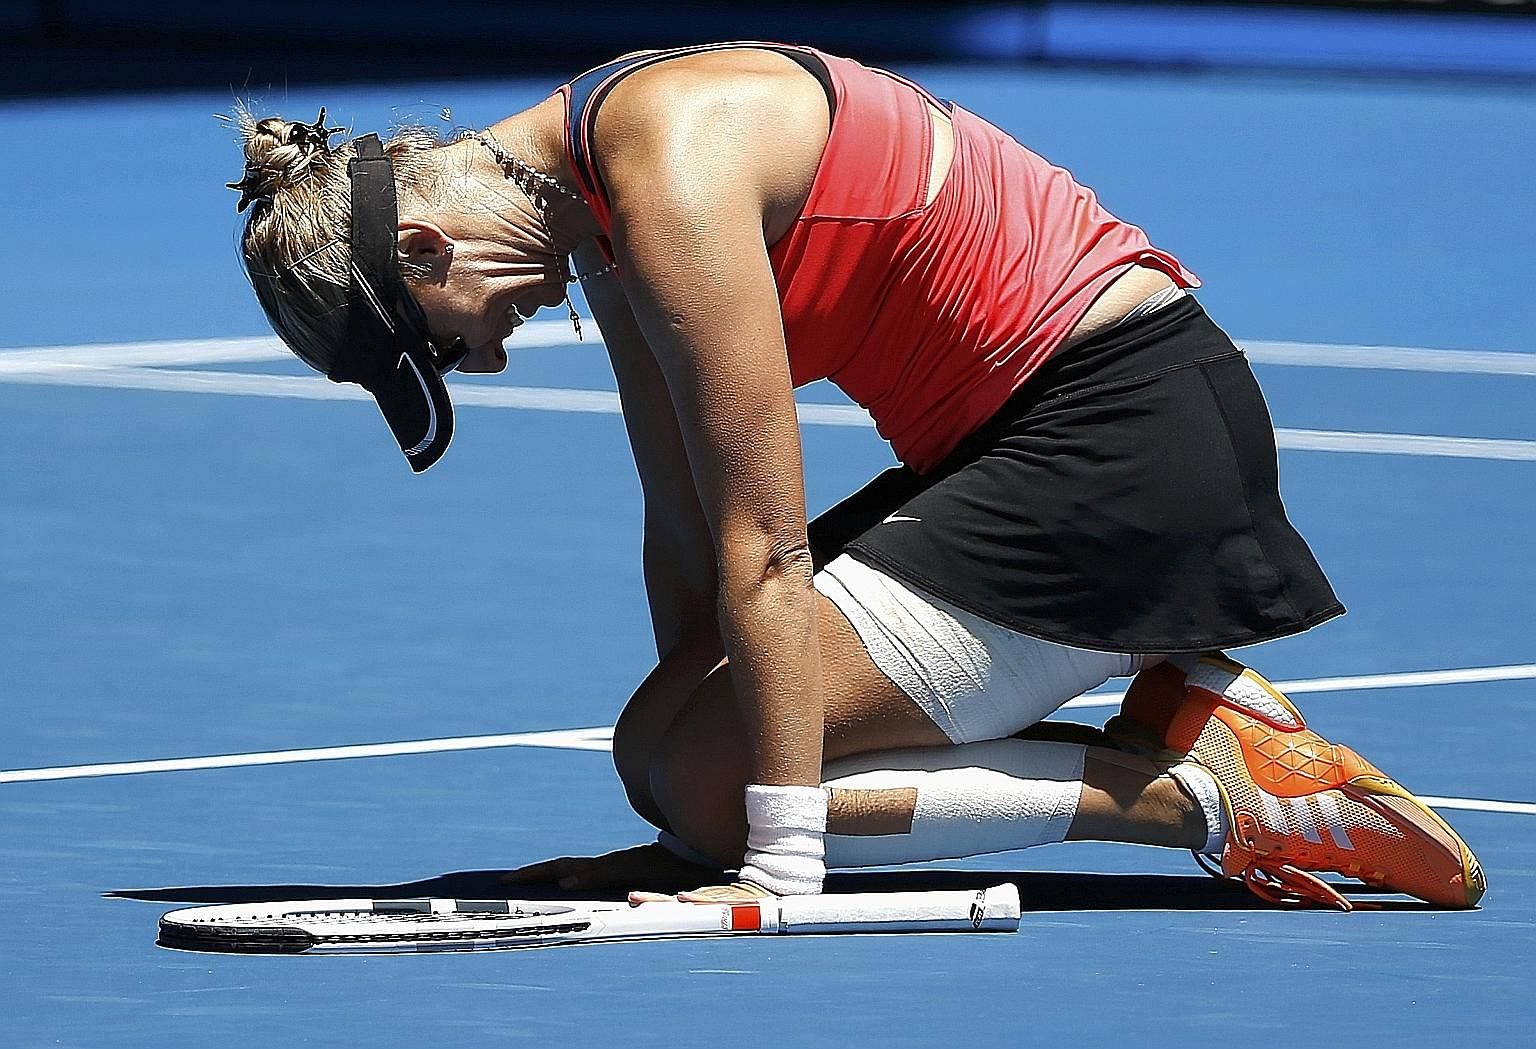 Mirjana Lucic-Baroni, the world No. 79, is overcome by emotion after her 6-4, 3-6, 6-4 Australian Open victory against Karolina Pliskova in the quarter-finals yesterday.